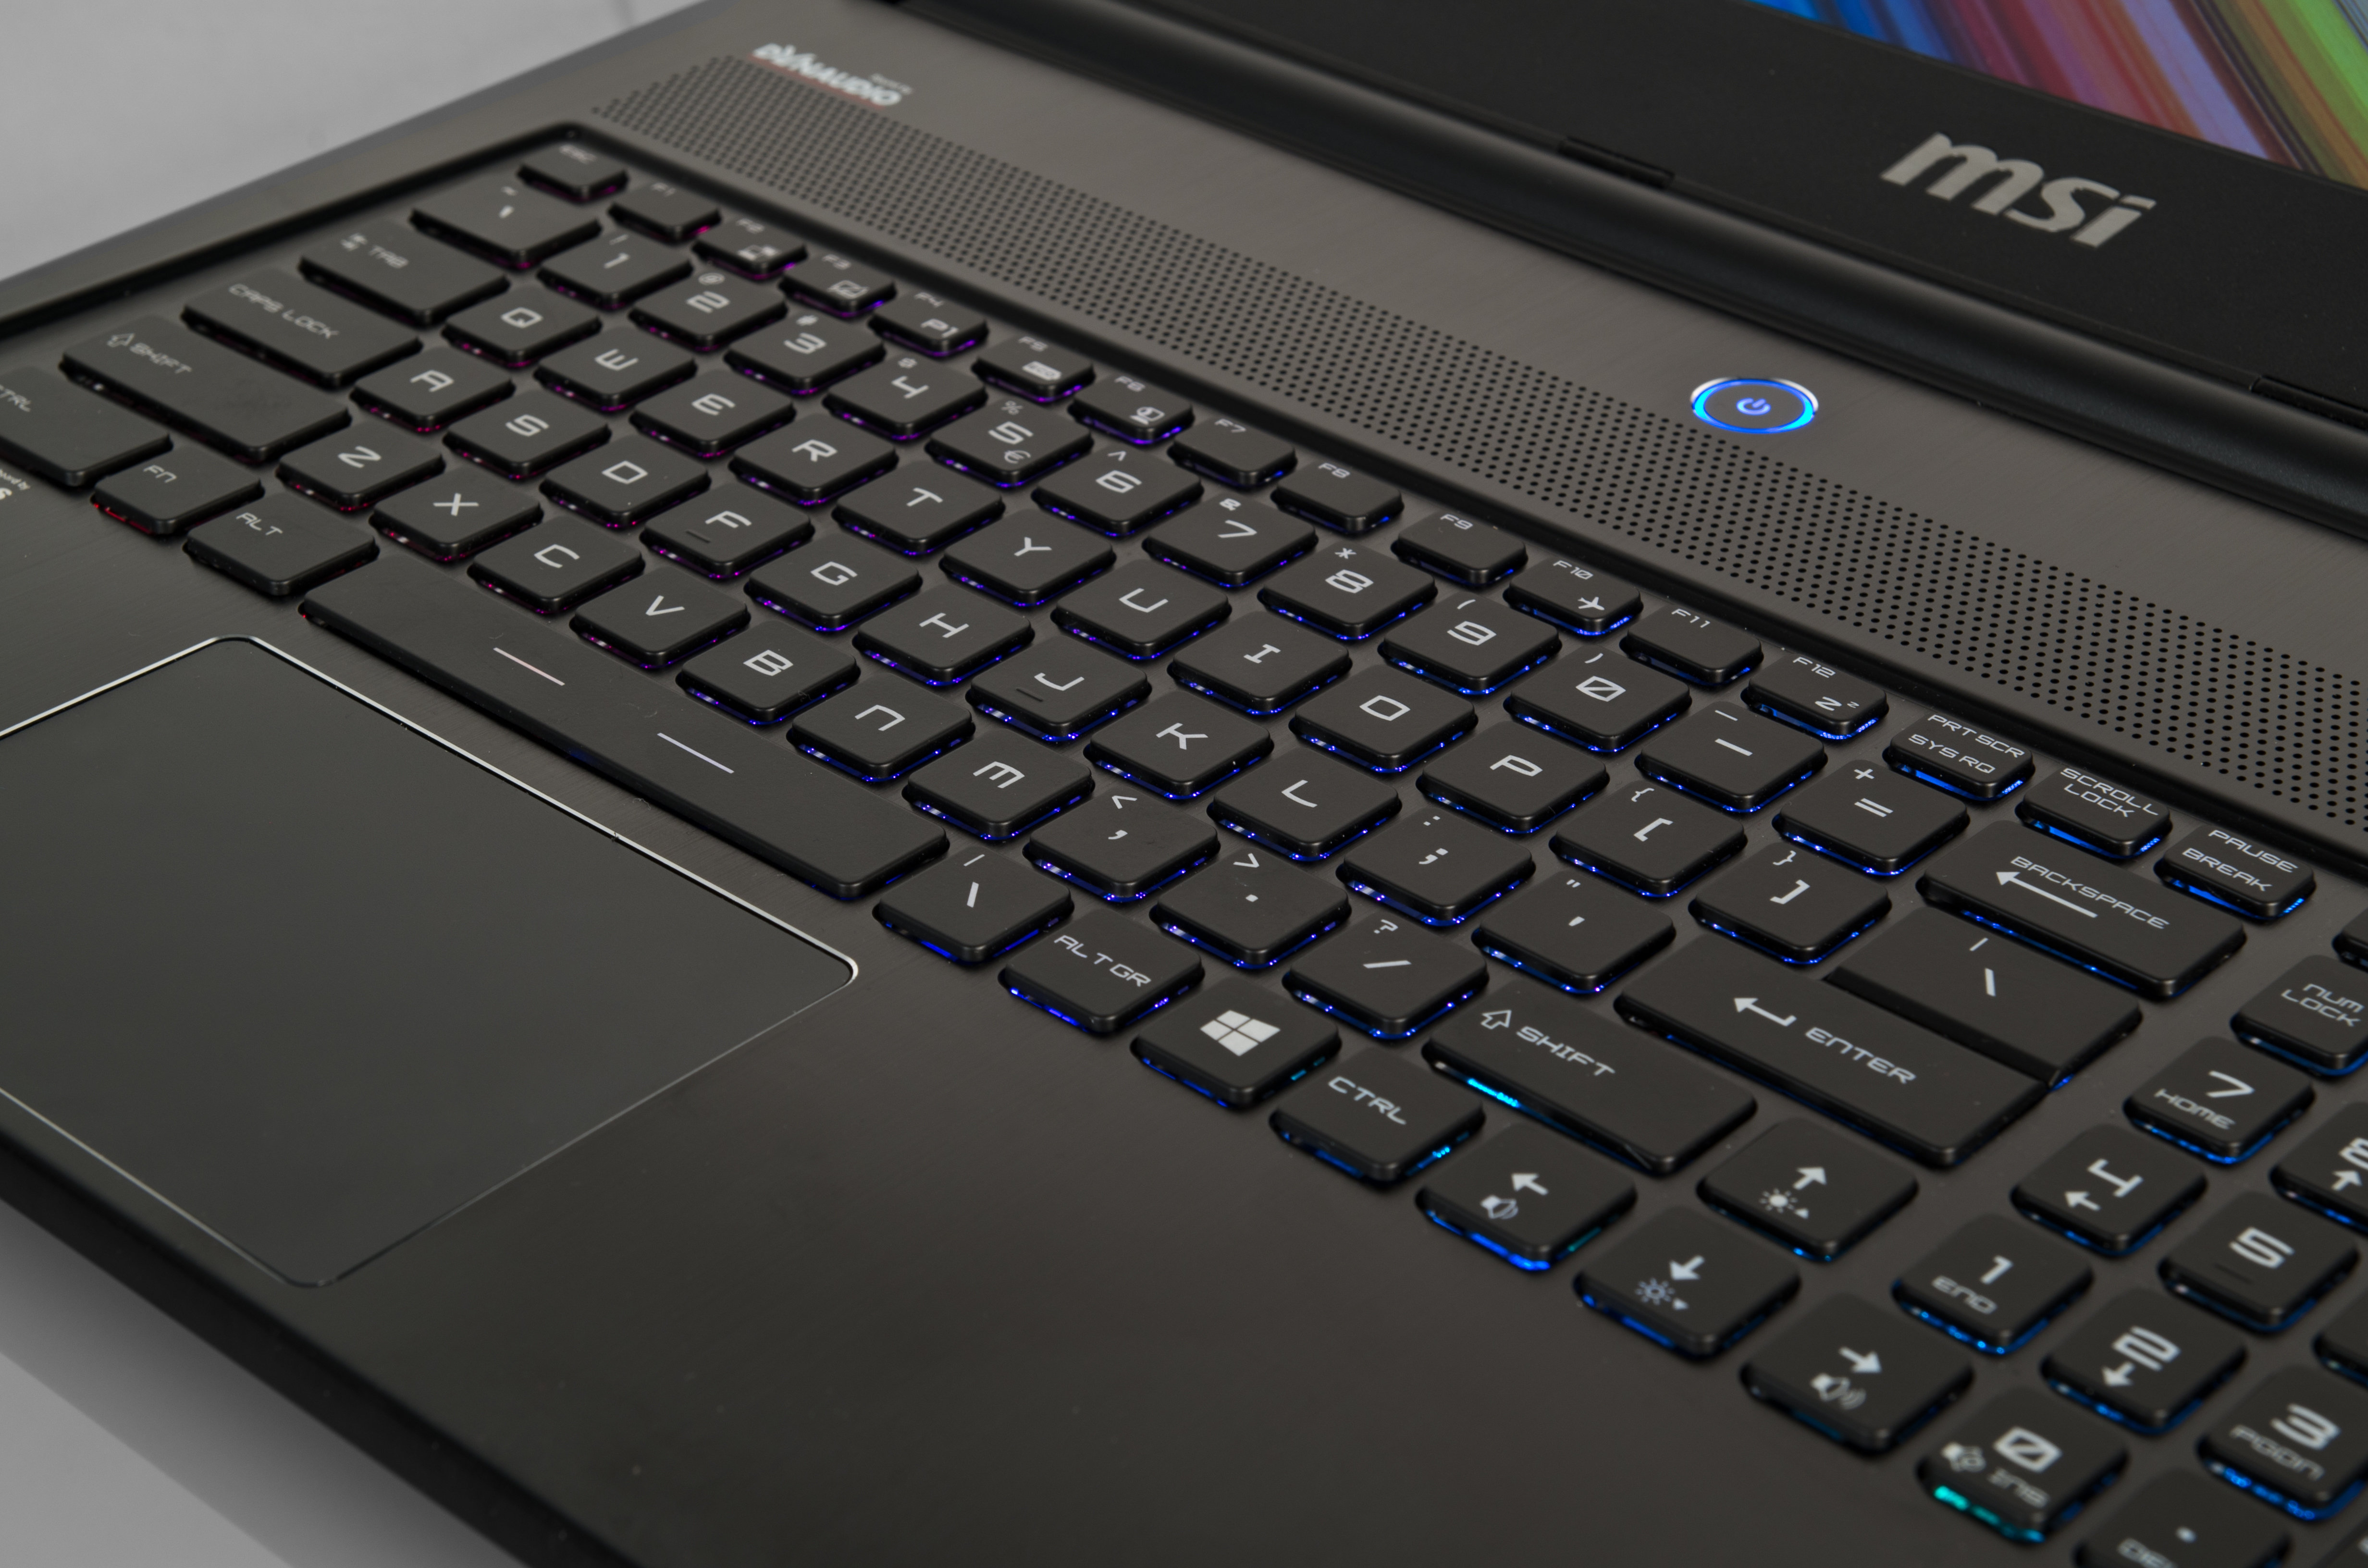 A picture of the MSI GS60 Ghost's keyboard.